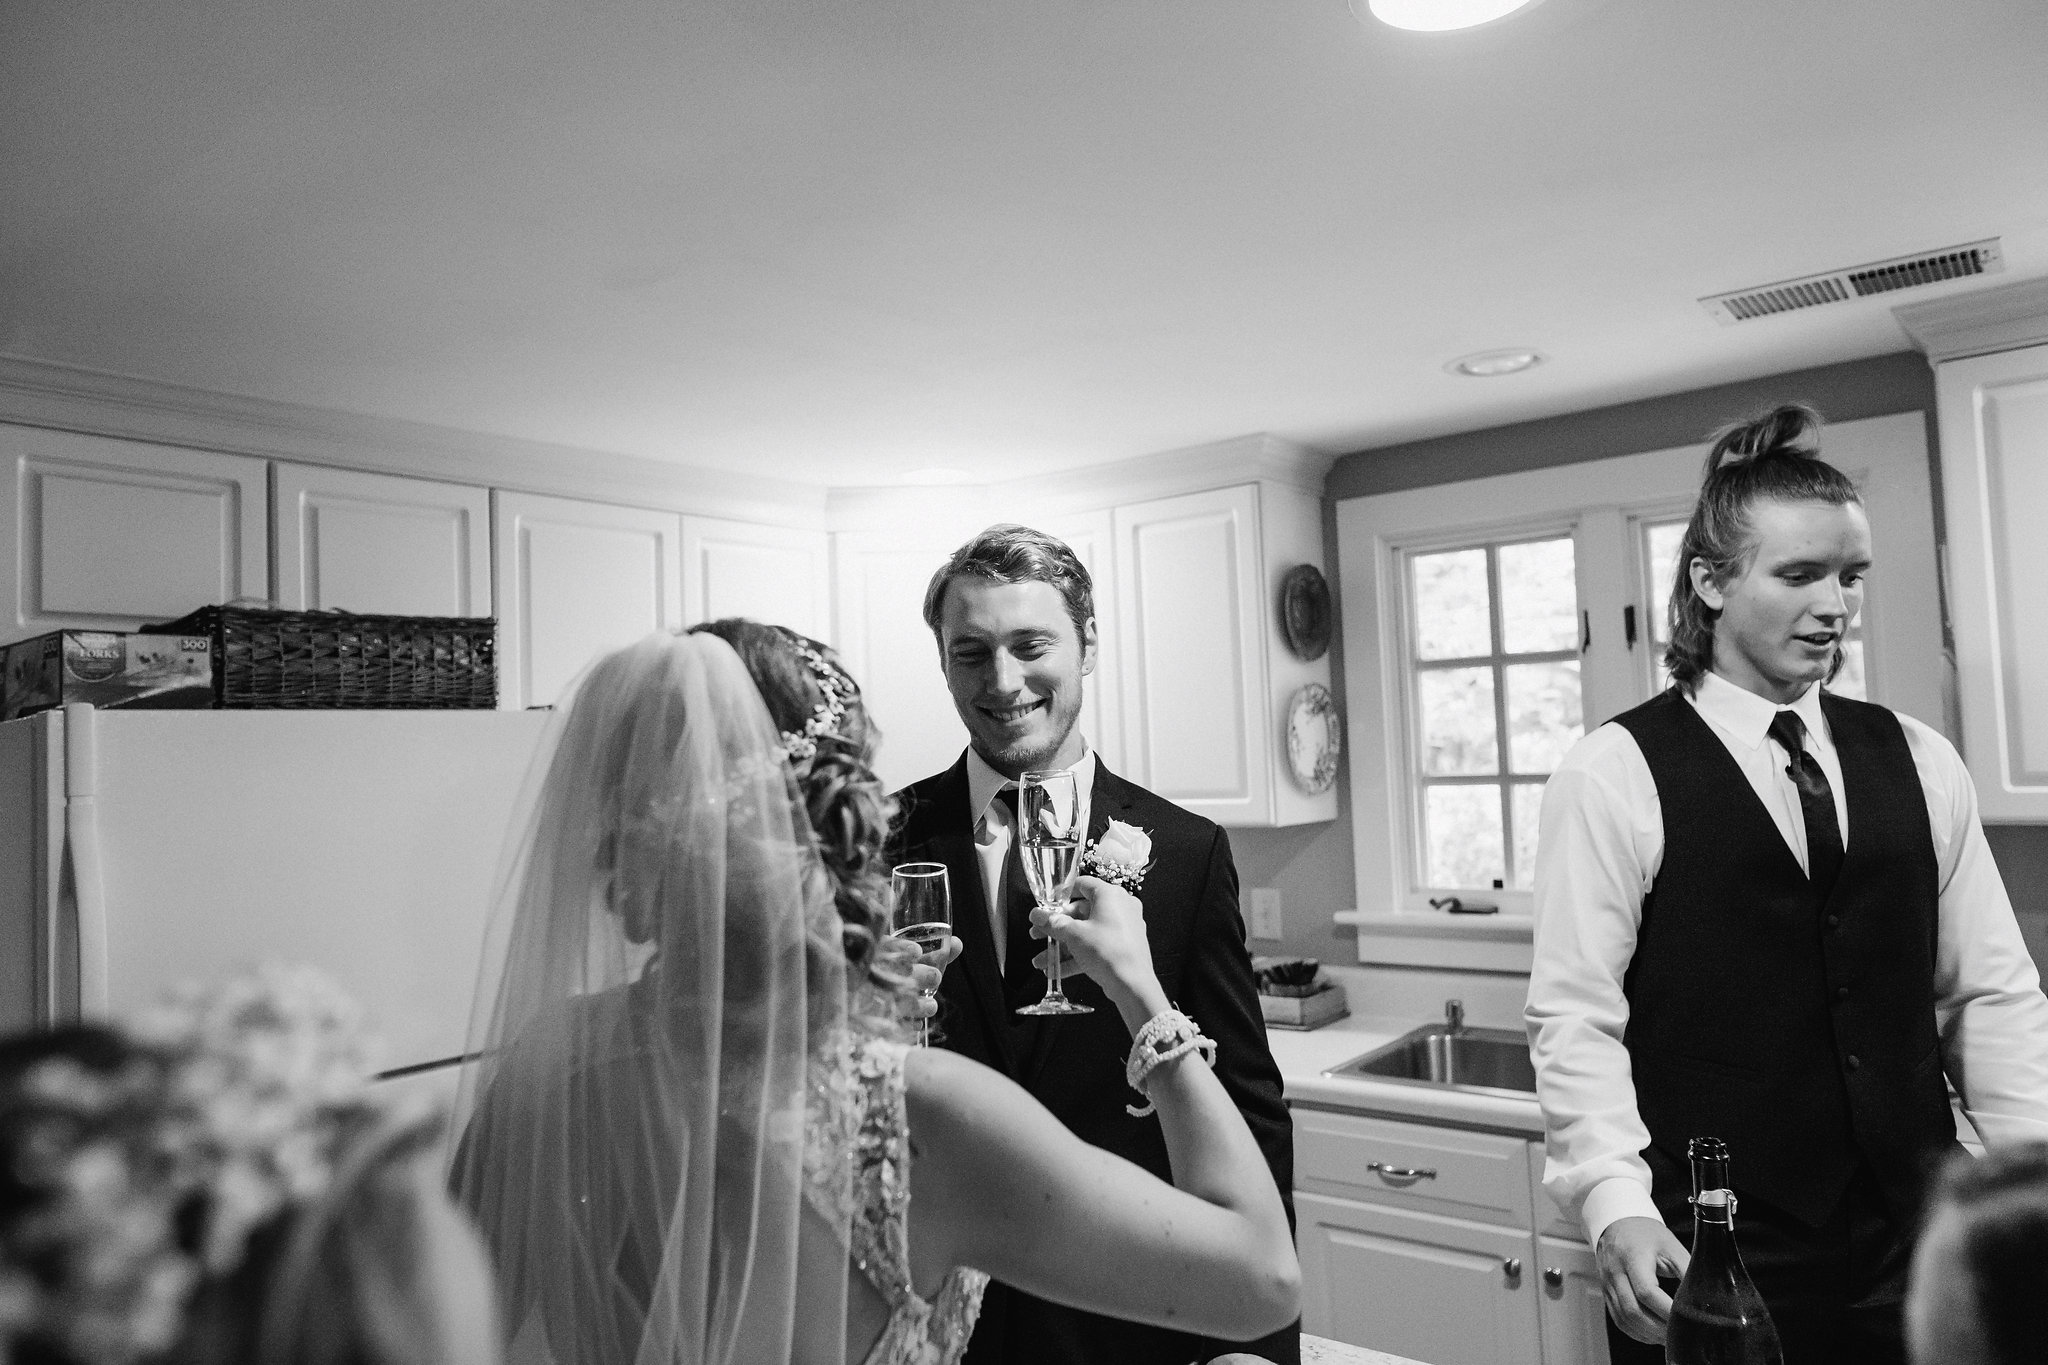 Nikki&DrewMarried2017-08-14at17.53.37PM110.jpg